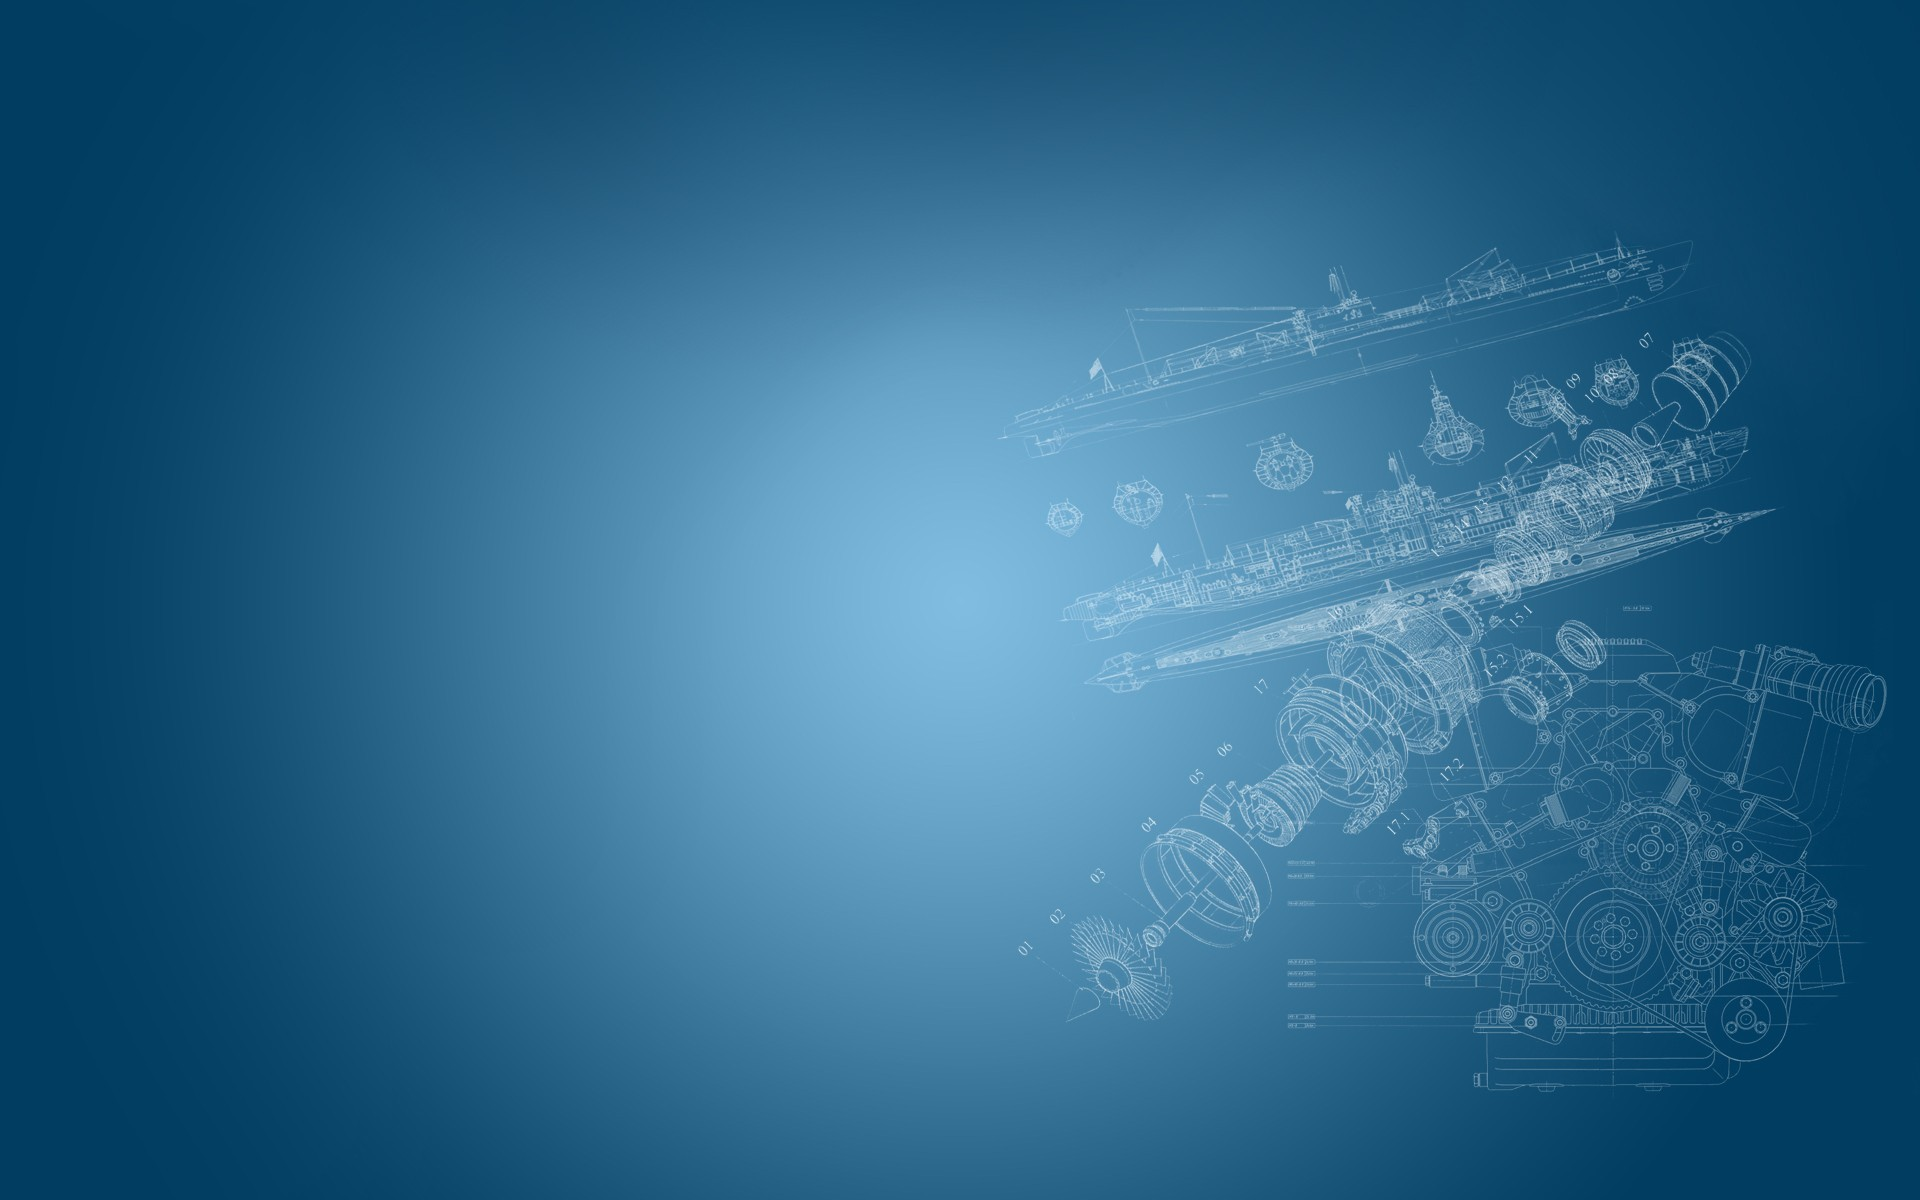 General 1920x1200 graphic design ship engines simple background blue engineering